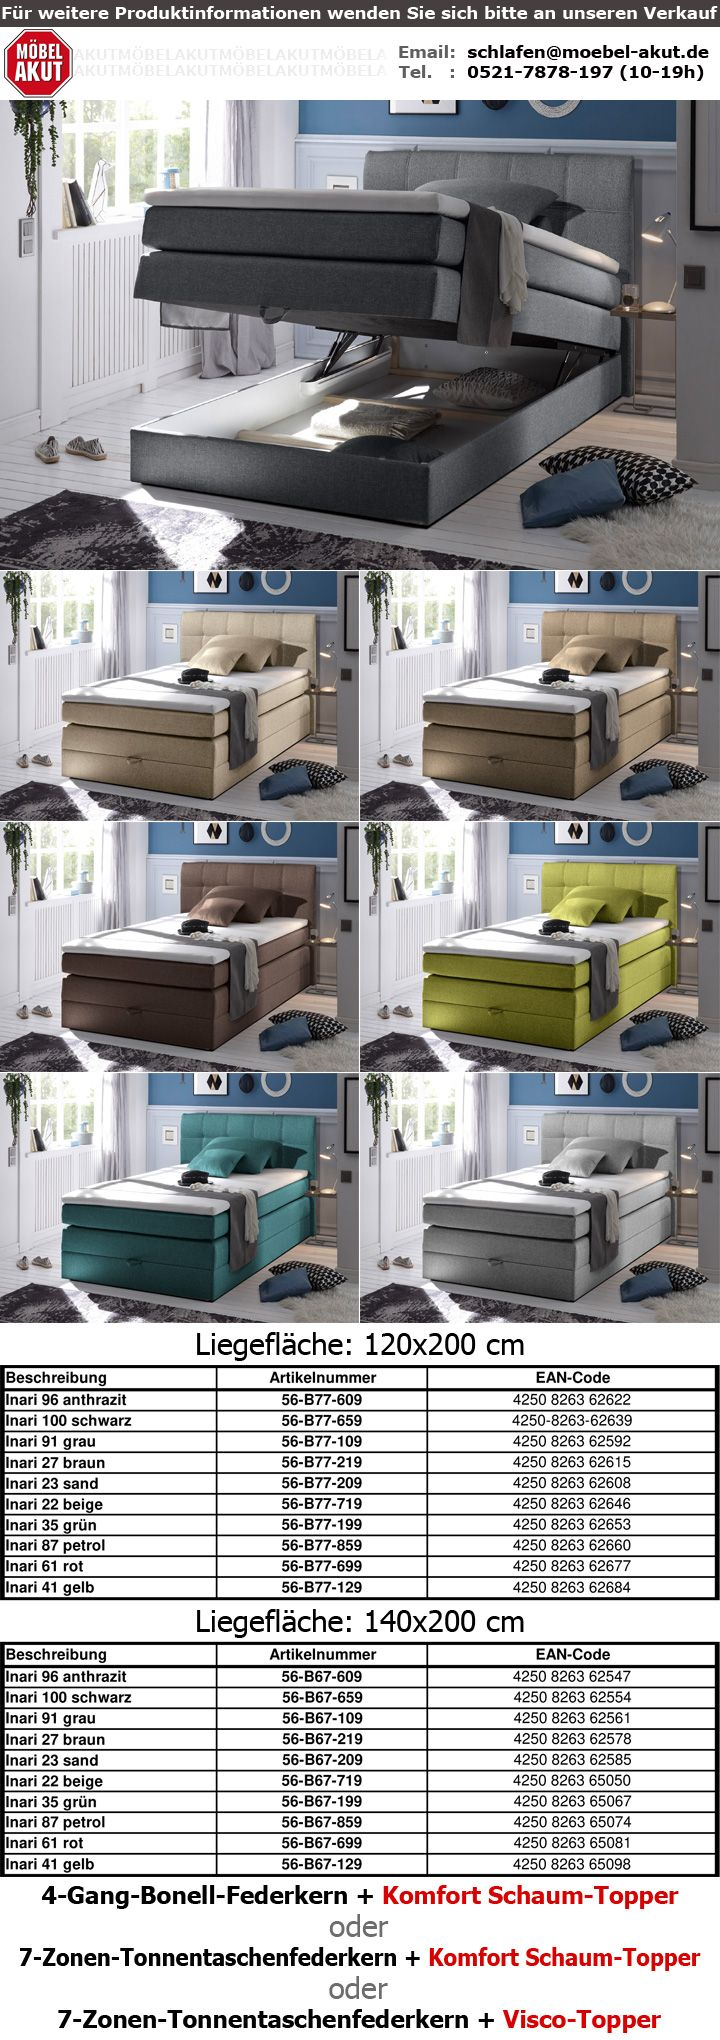 boxspringbett new bedford 1 stoff beige bonell federkern mit bettkasten 120x200 ebay. Black Bedroom Furniture Sets. Home Design Ideas